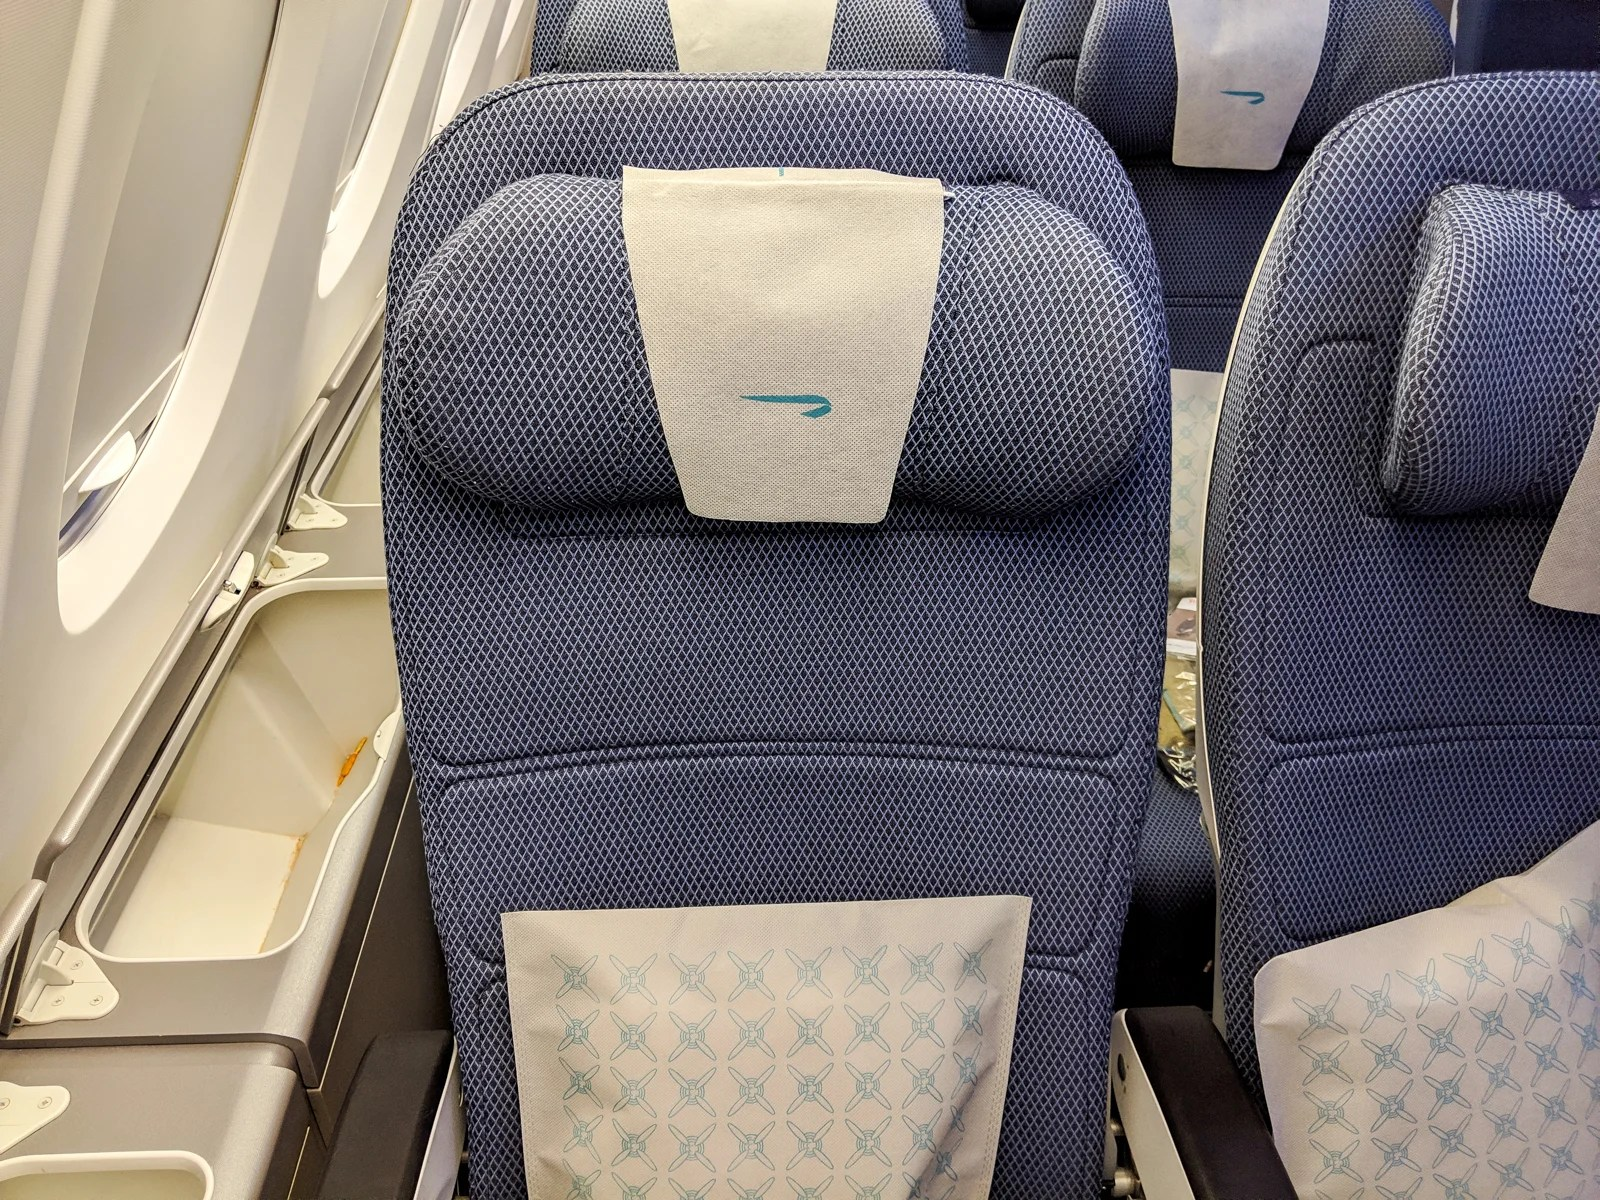 Review: British Airways A380 in Economy From SFO to LHR